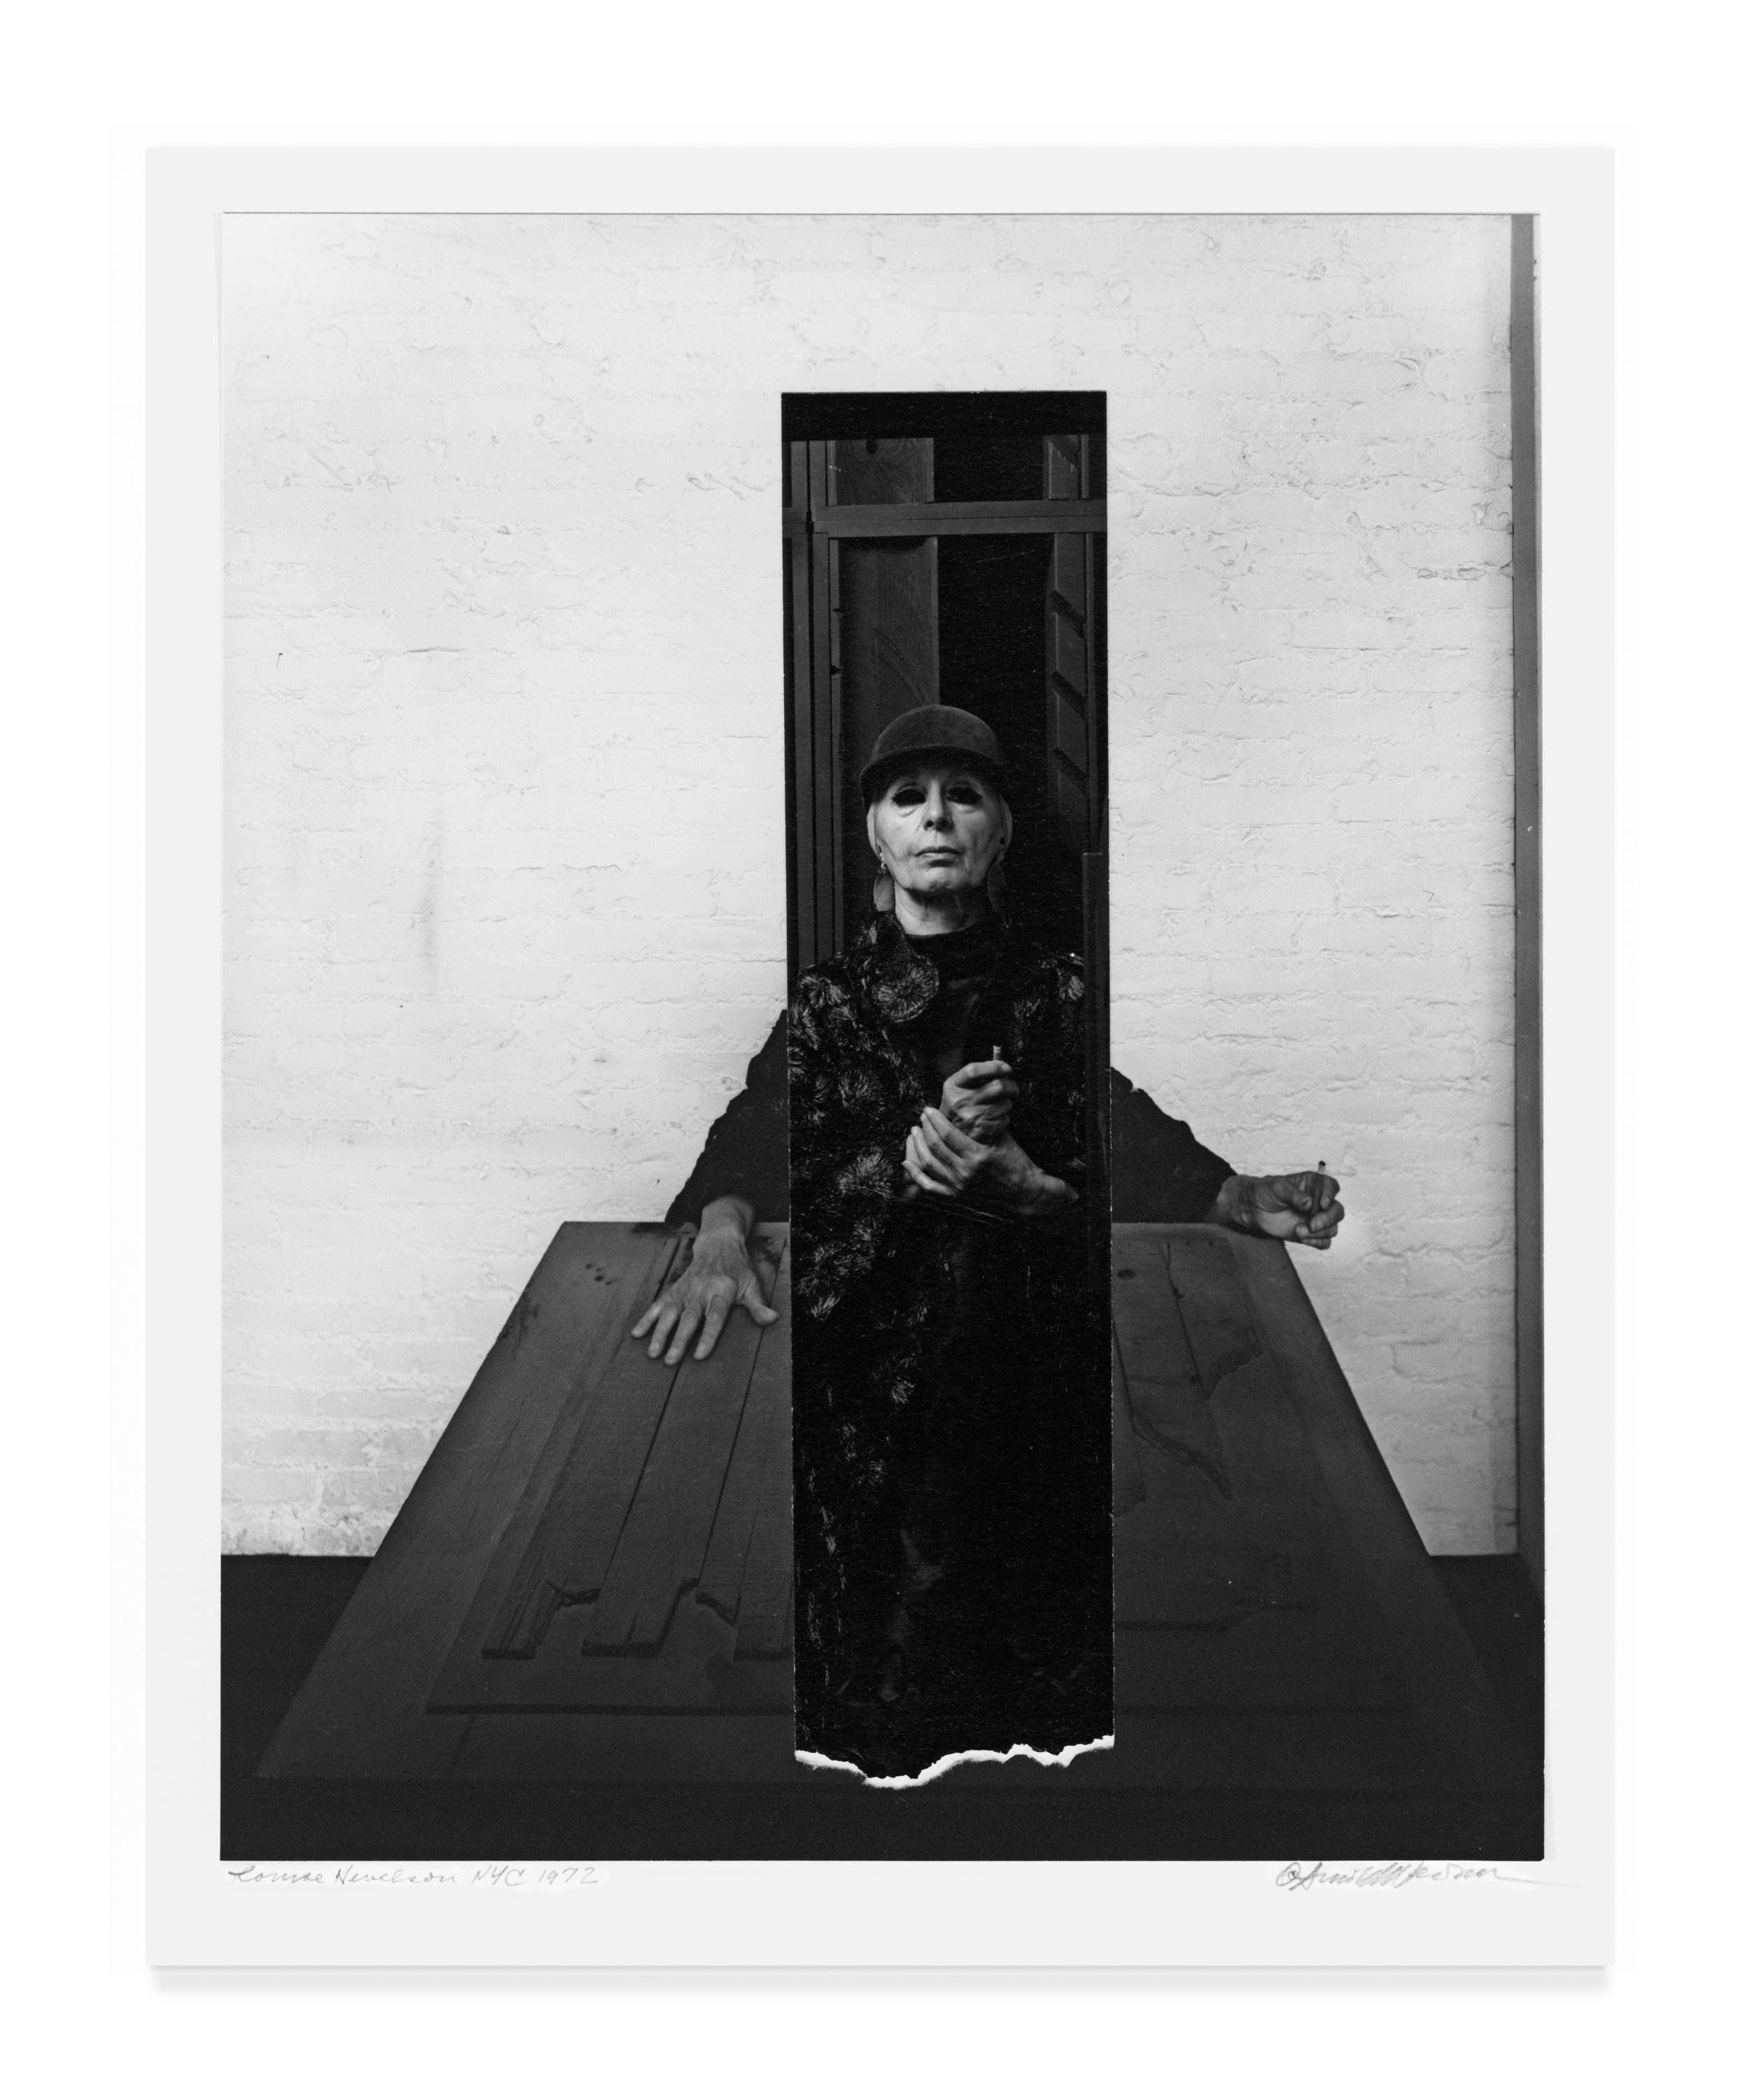 """Louise Nevelson (collage) from """"Seeing Arnold Newman"""" published by Radius Books © 2018"""